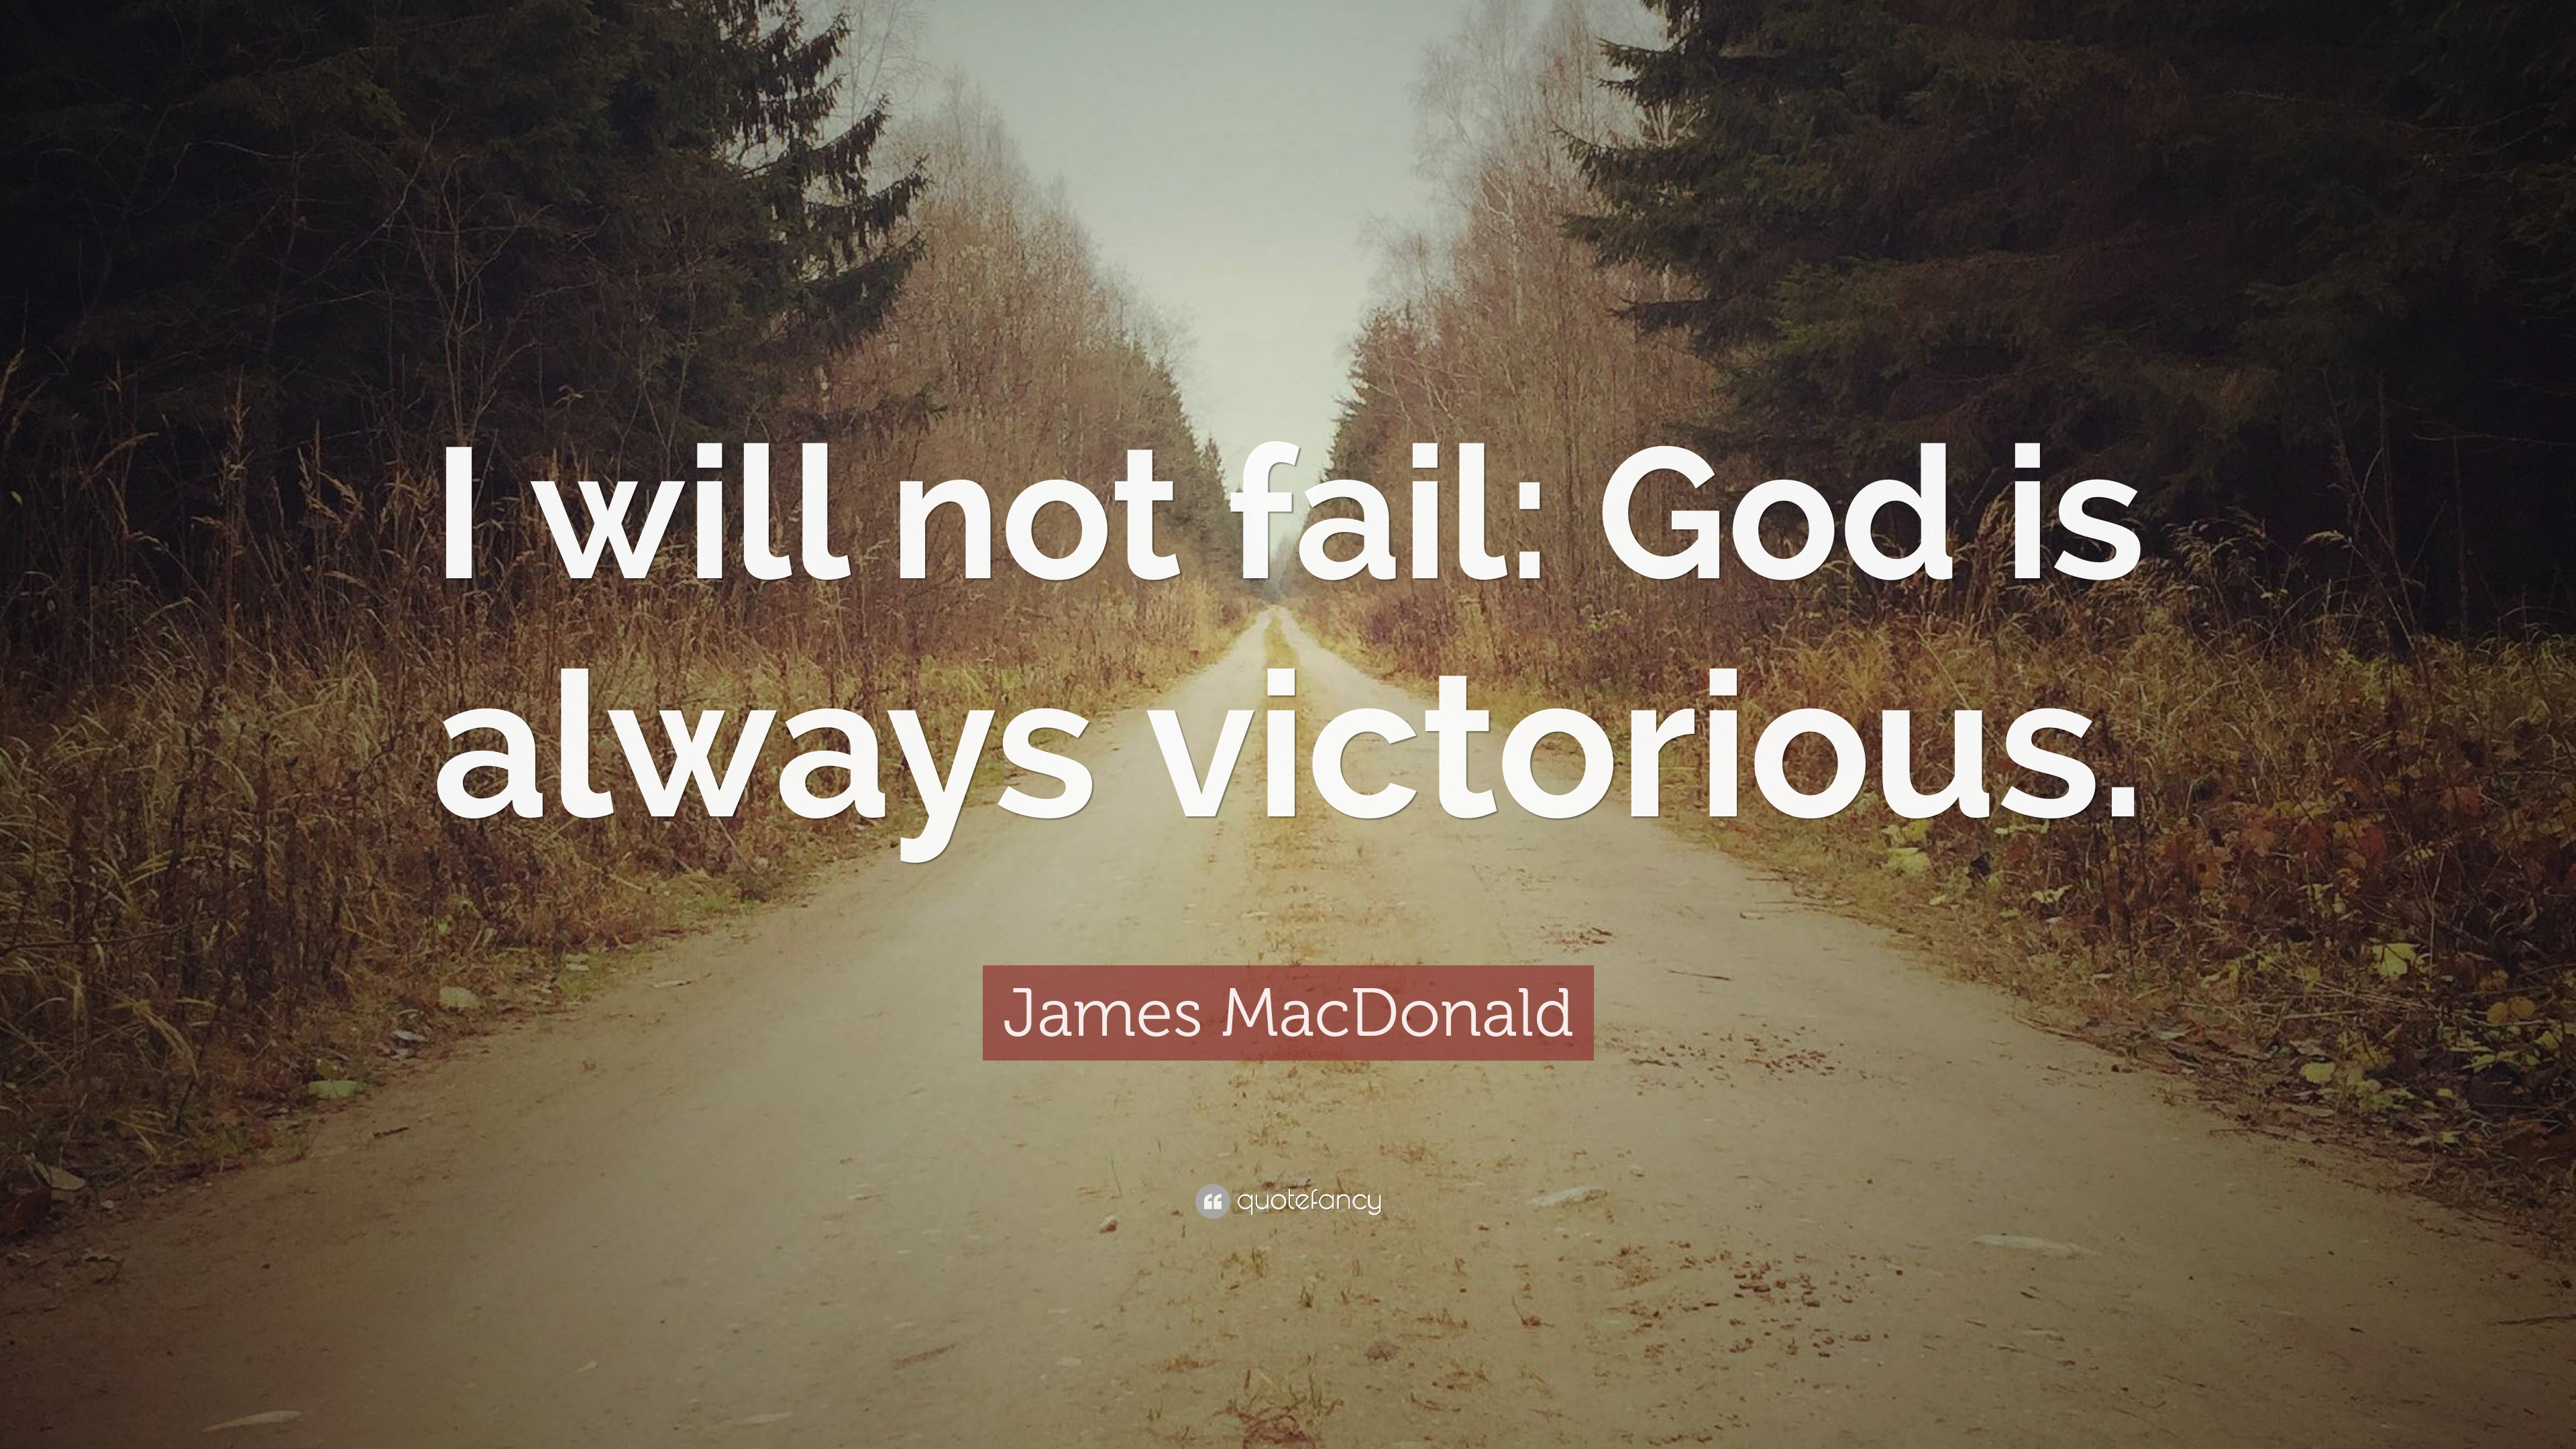 James MacDonald Quote: I will not fail: God is always